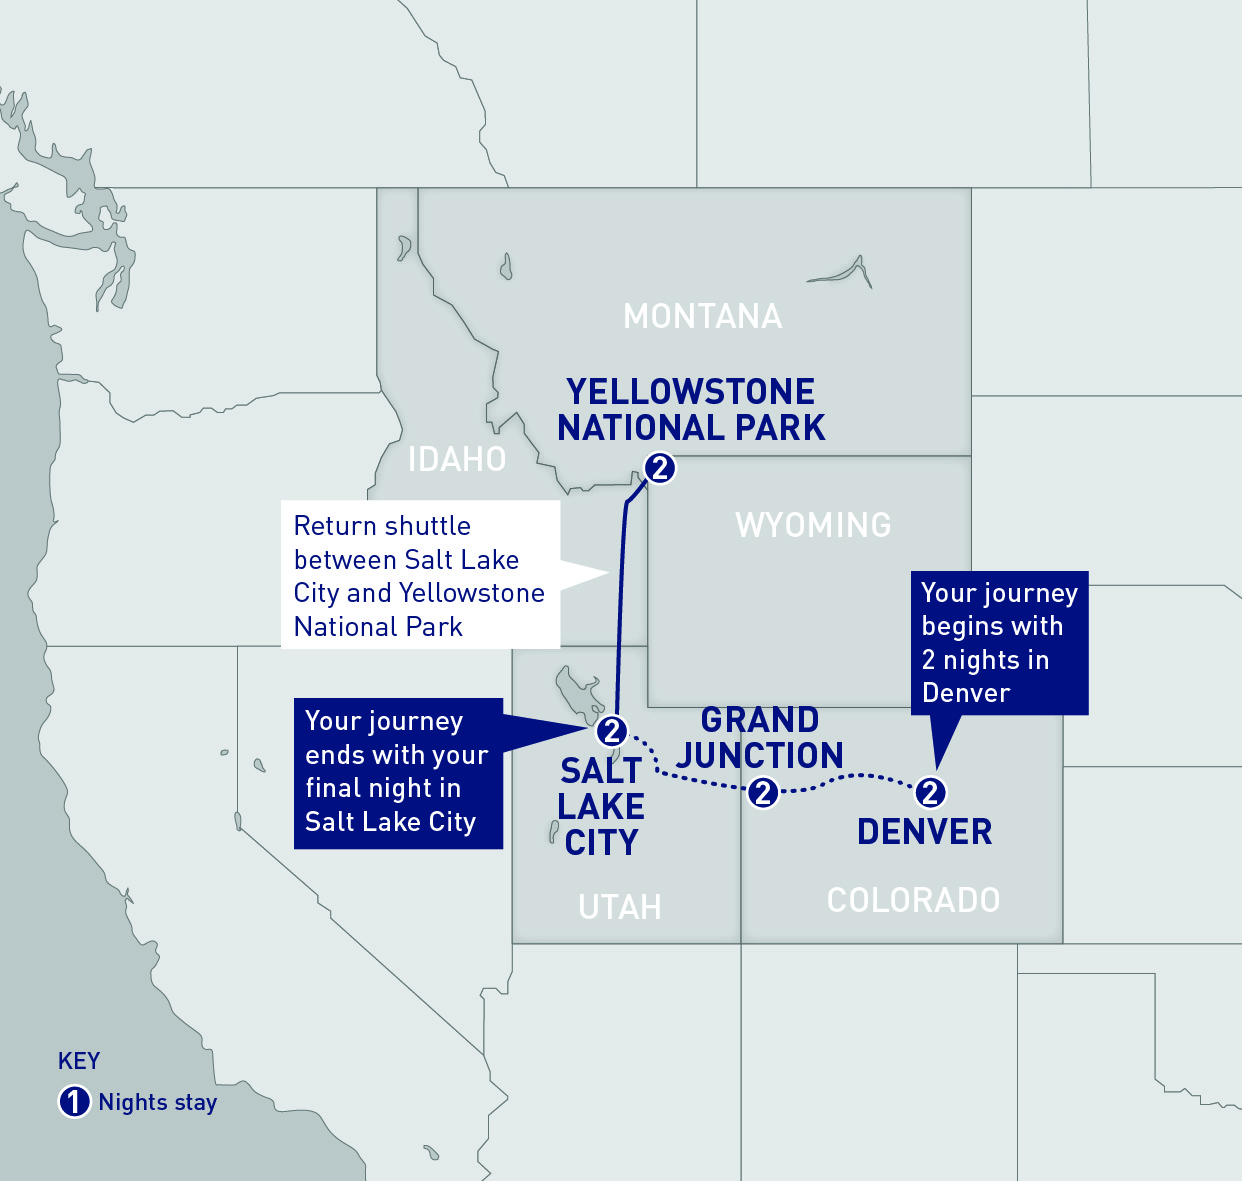 Amtrak Vacations® Official Site. National Parks Train Vacations on yellowstone entrance, yellowstone park geology, yellowstone map, yellowstone activities, yellowstone canyon campground, yellowstone rainbow bridge, yellowstone hotspot, yellowstone deaths 2009 hot springs, yellowstone falls, yellowstone caldera, yellowstone grassland plants,